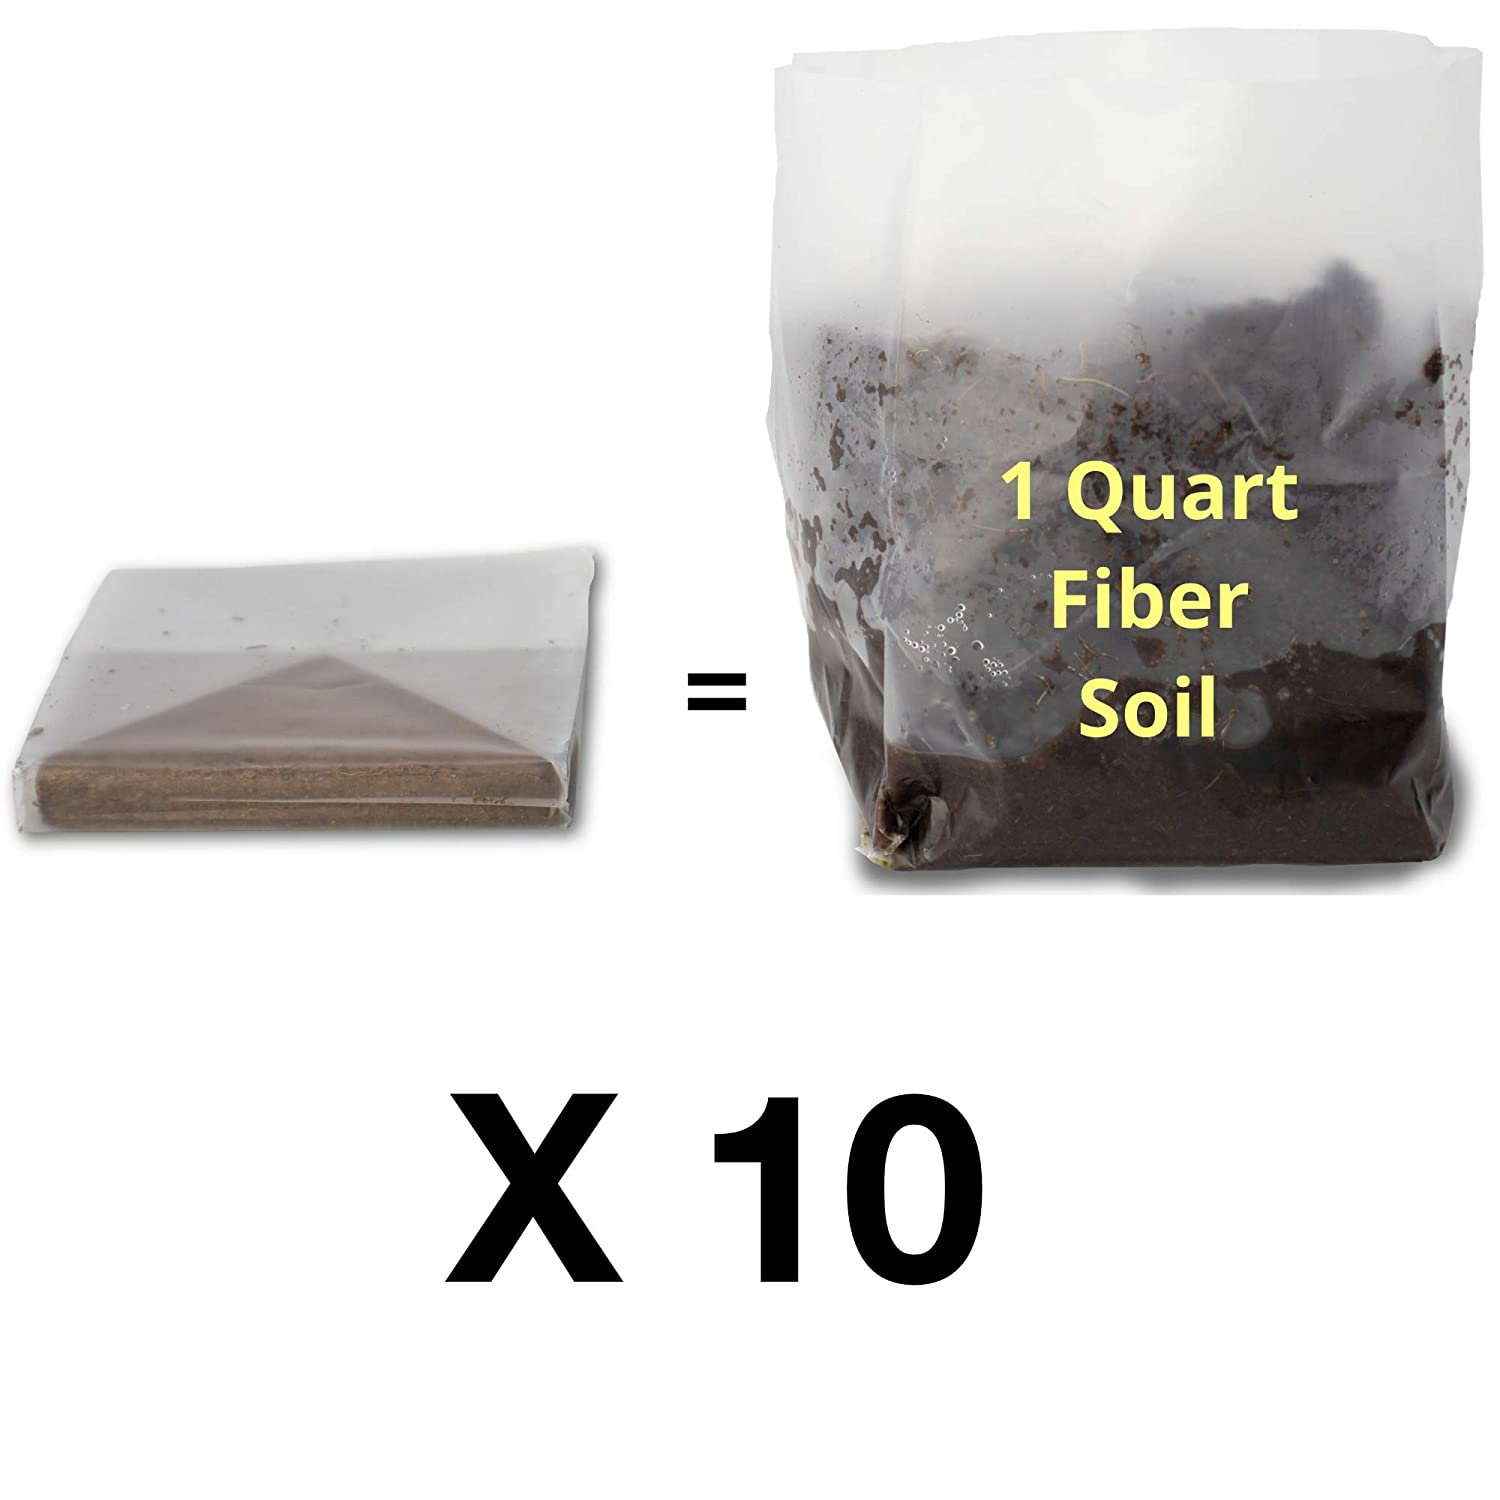 For Planting Indoor Container House Plants Organic Potting Soil Herbs 10 Quarts Microgreens Hydrating Bag = Healthy Plants Easy-to-Store. Wheatgrass Fiber Soil Seed Starting Succulents